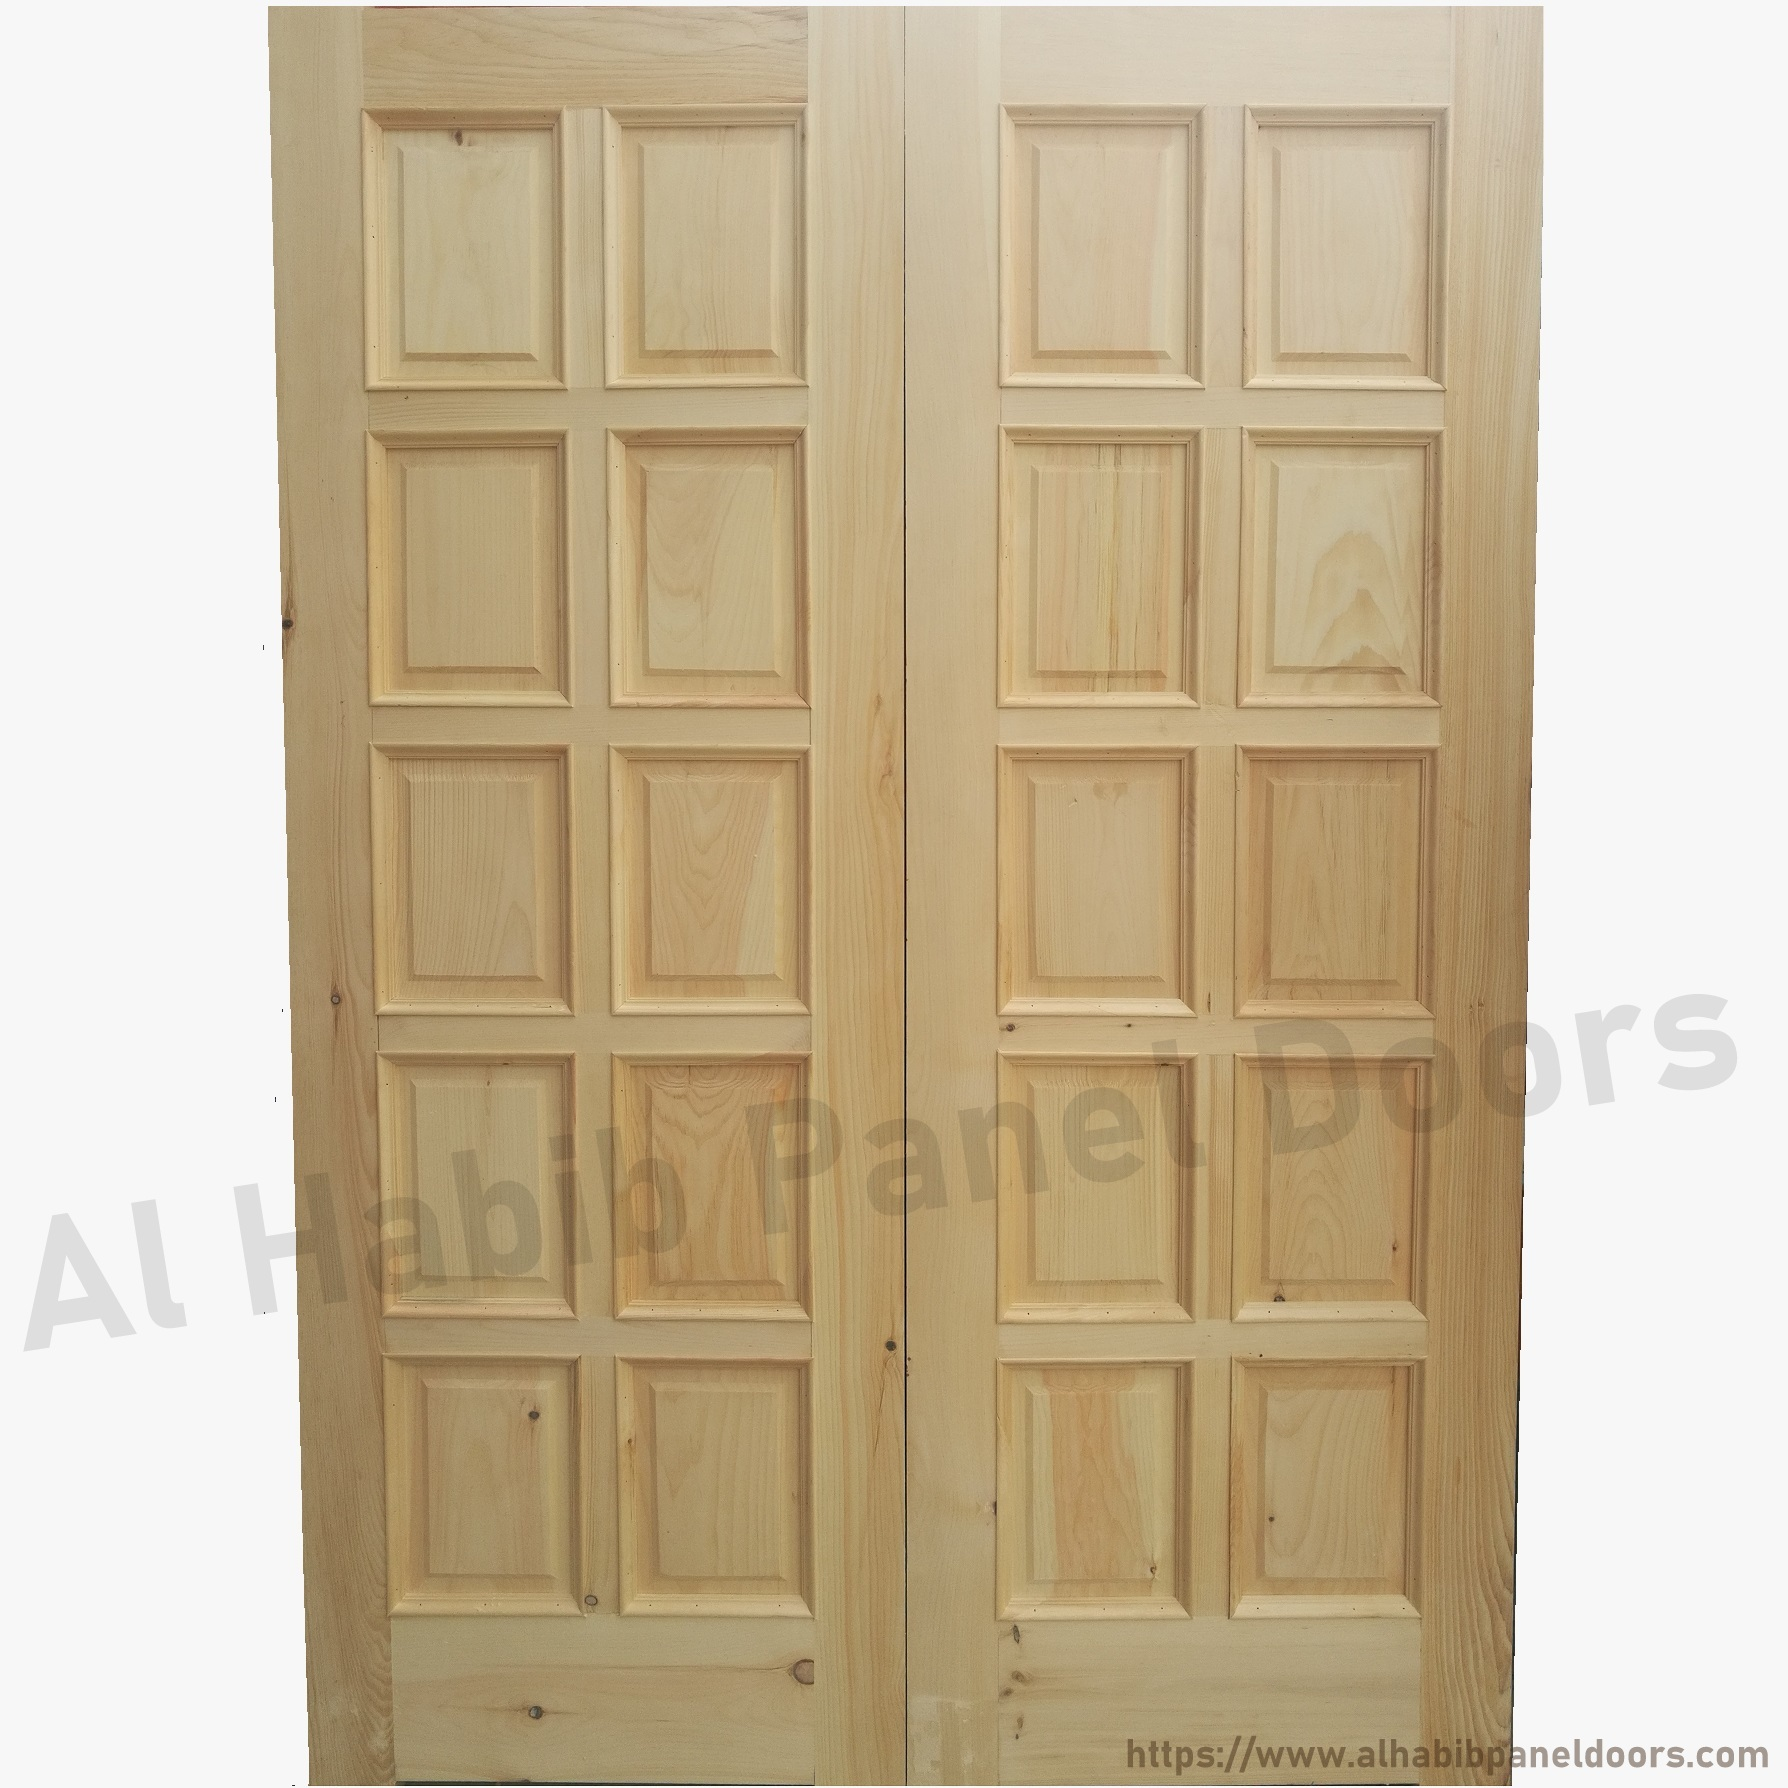 Diyar Solid Wood Main Double Door Hpd412 Doors Al